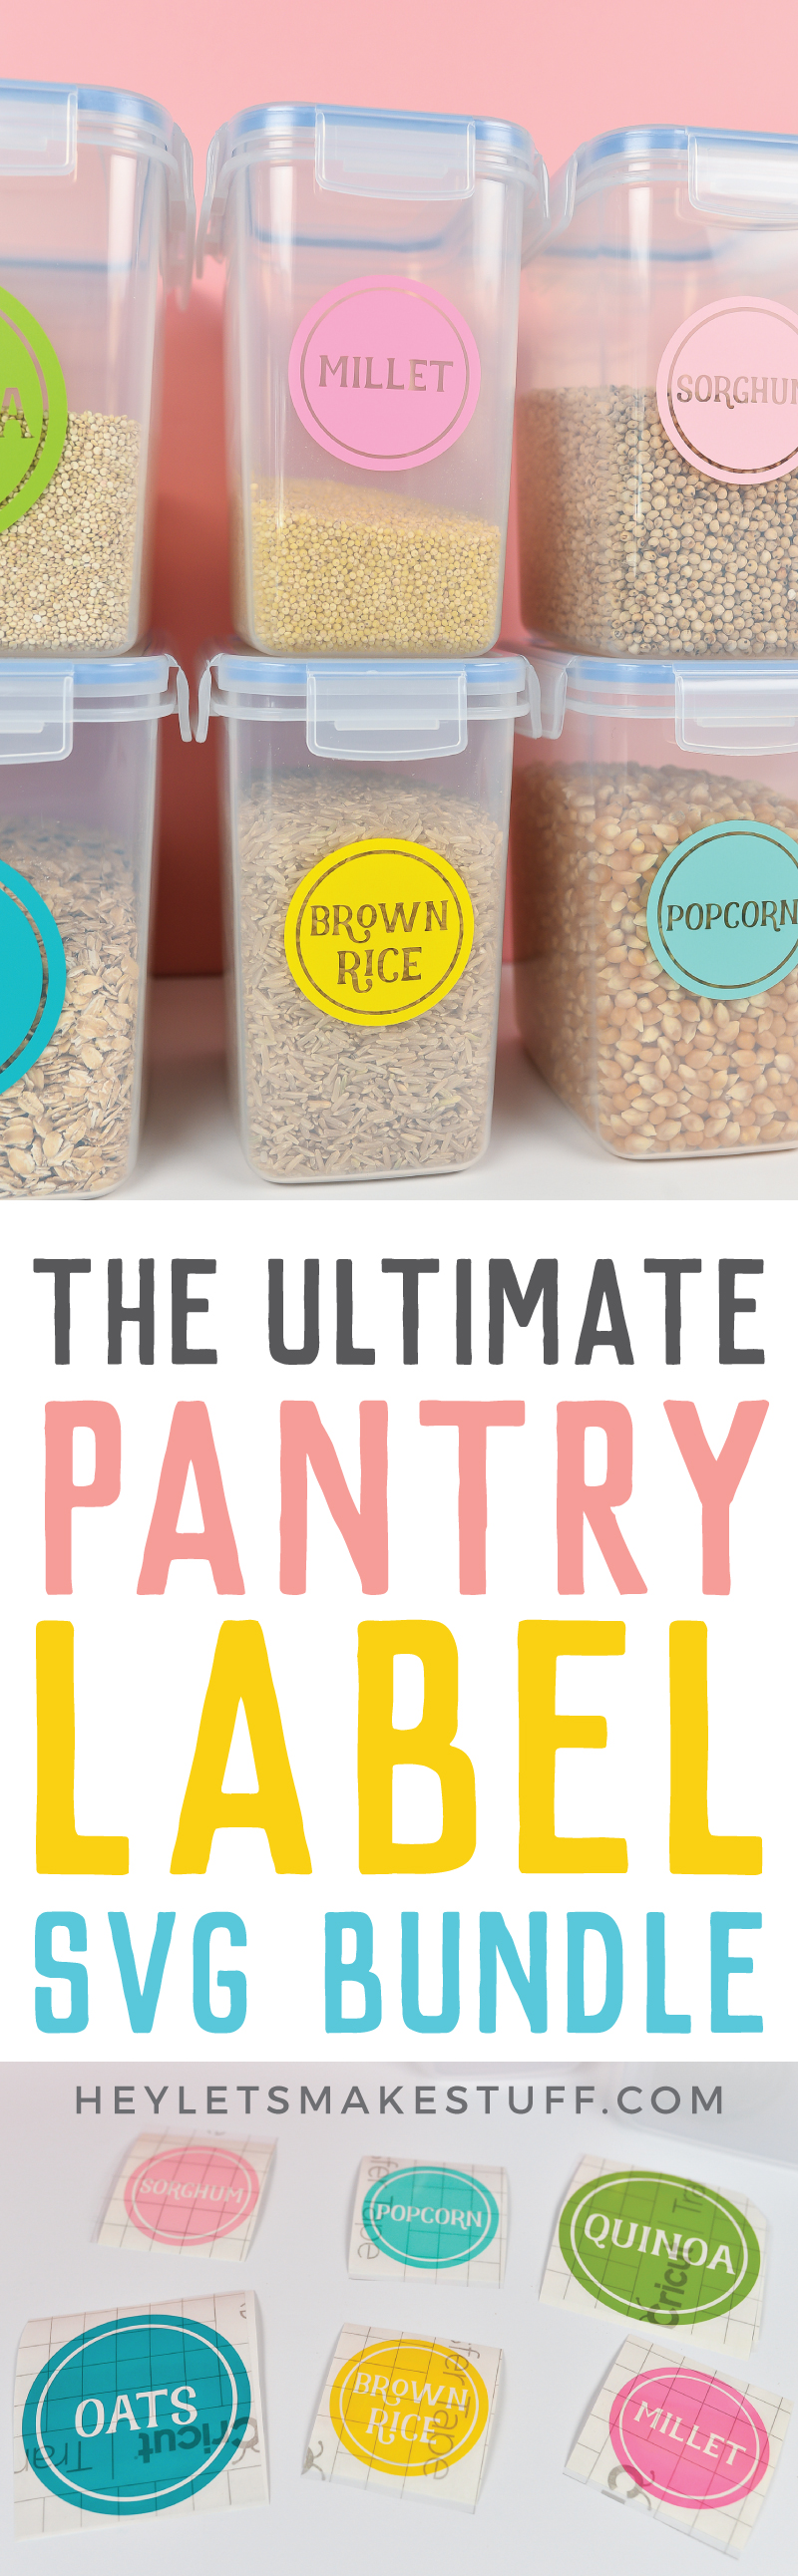 Colorful pantry label set